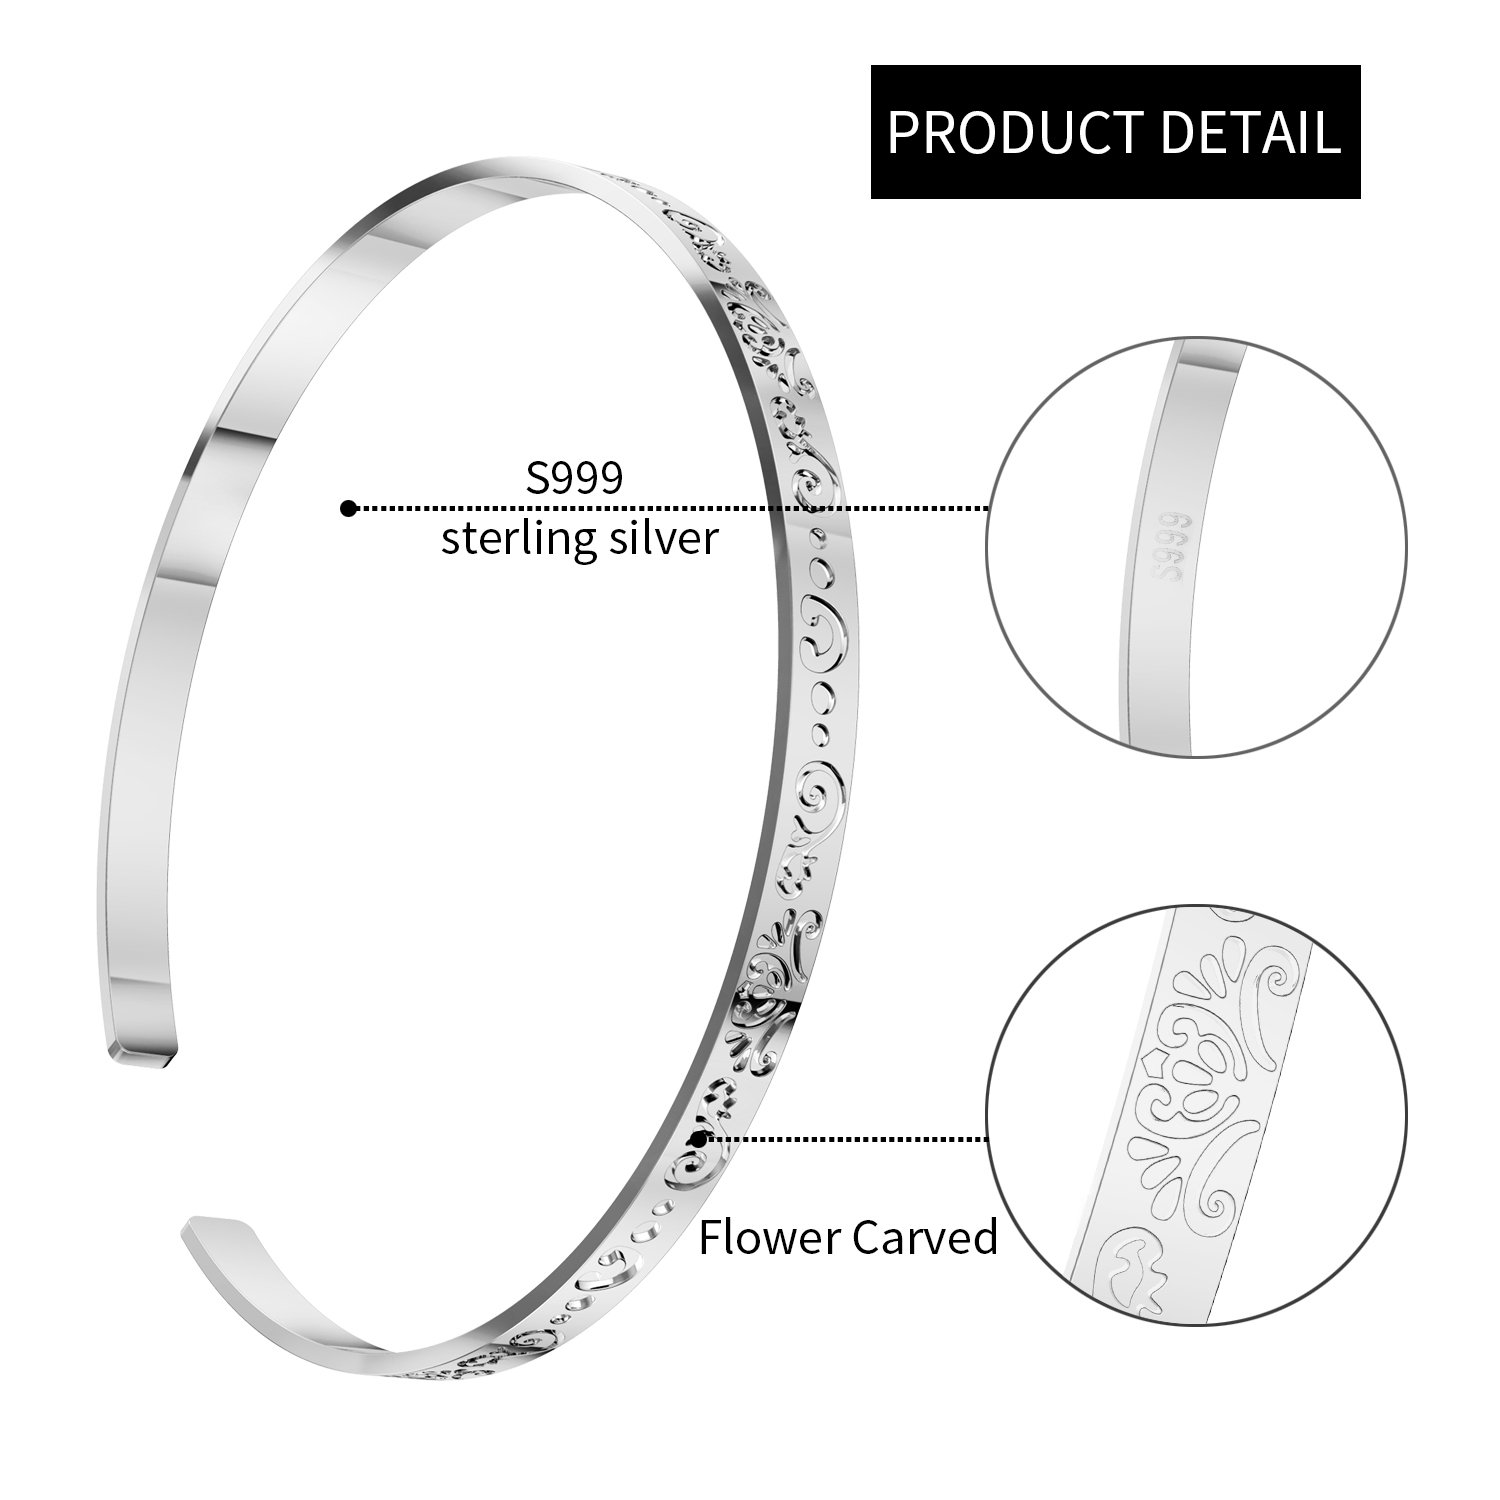 UHIBROS S999 Sterling Silver Flower Carved Bangle Adjustable Fine Vintage Cuff Bracelet for Women Girls